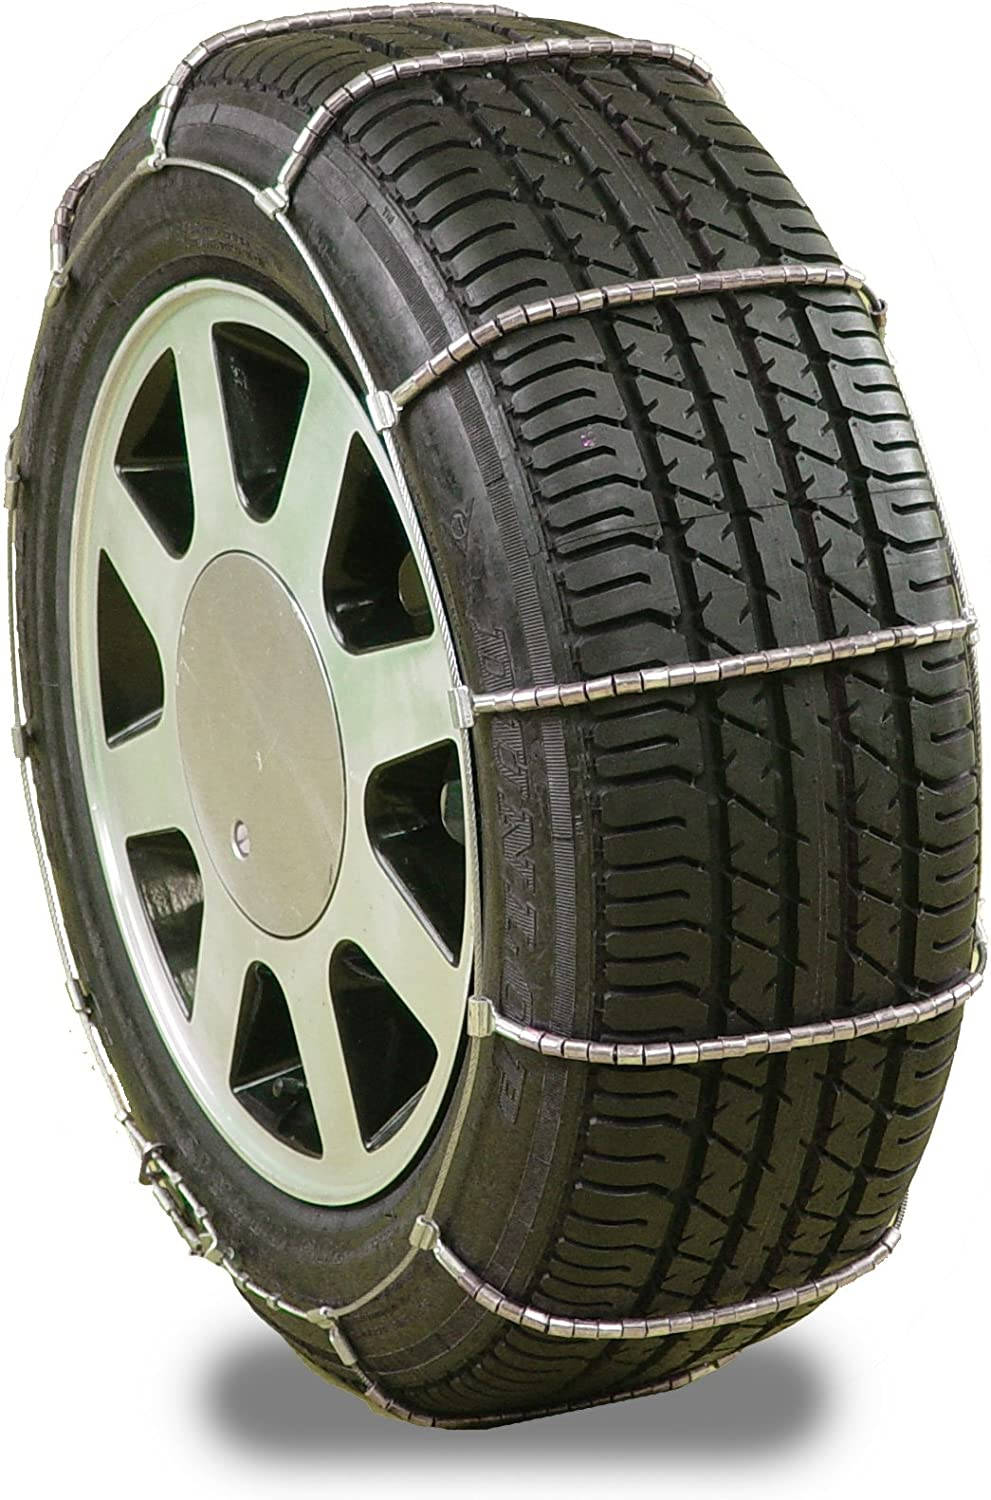 Quality inspection Glacier 1046 Passenger Cable Tire 2 Chain Chicago Mall of Set -